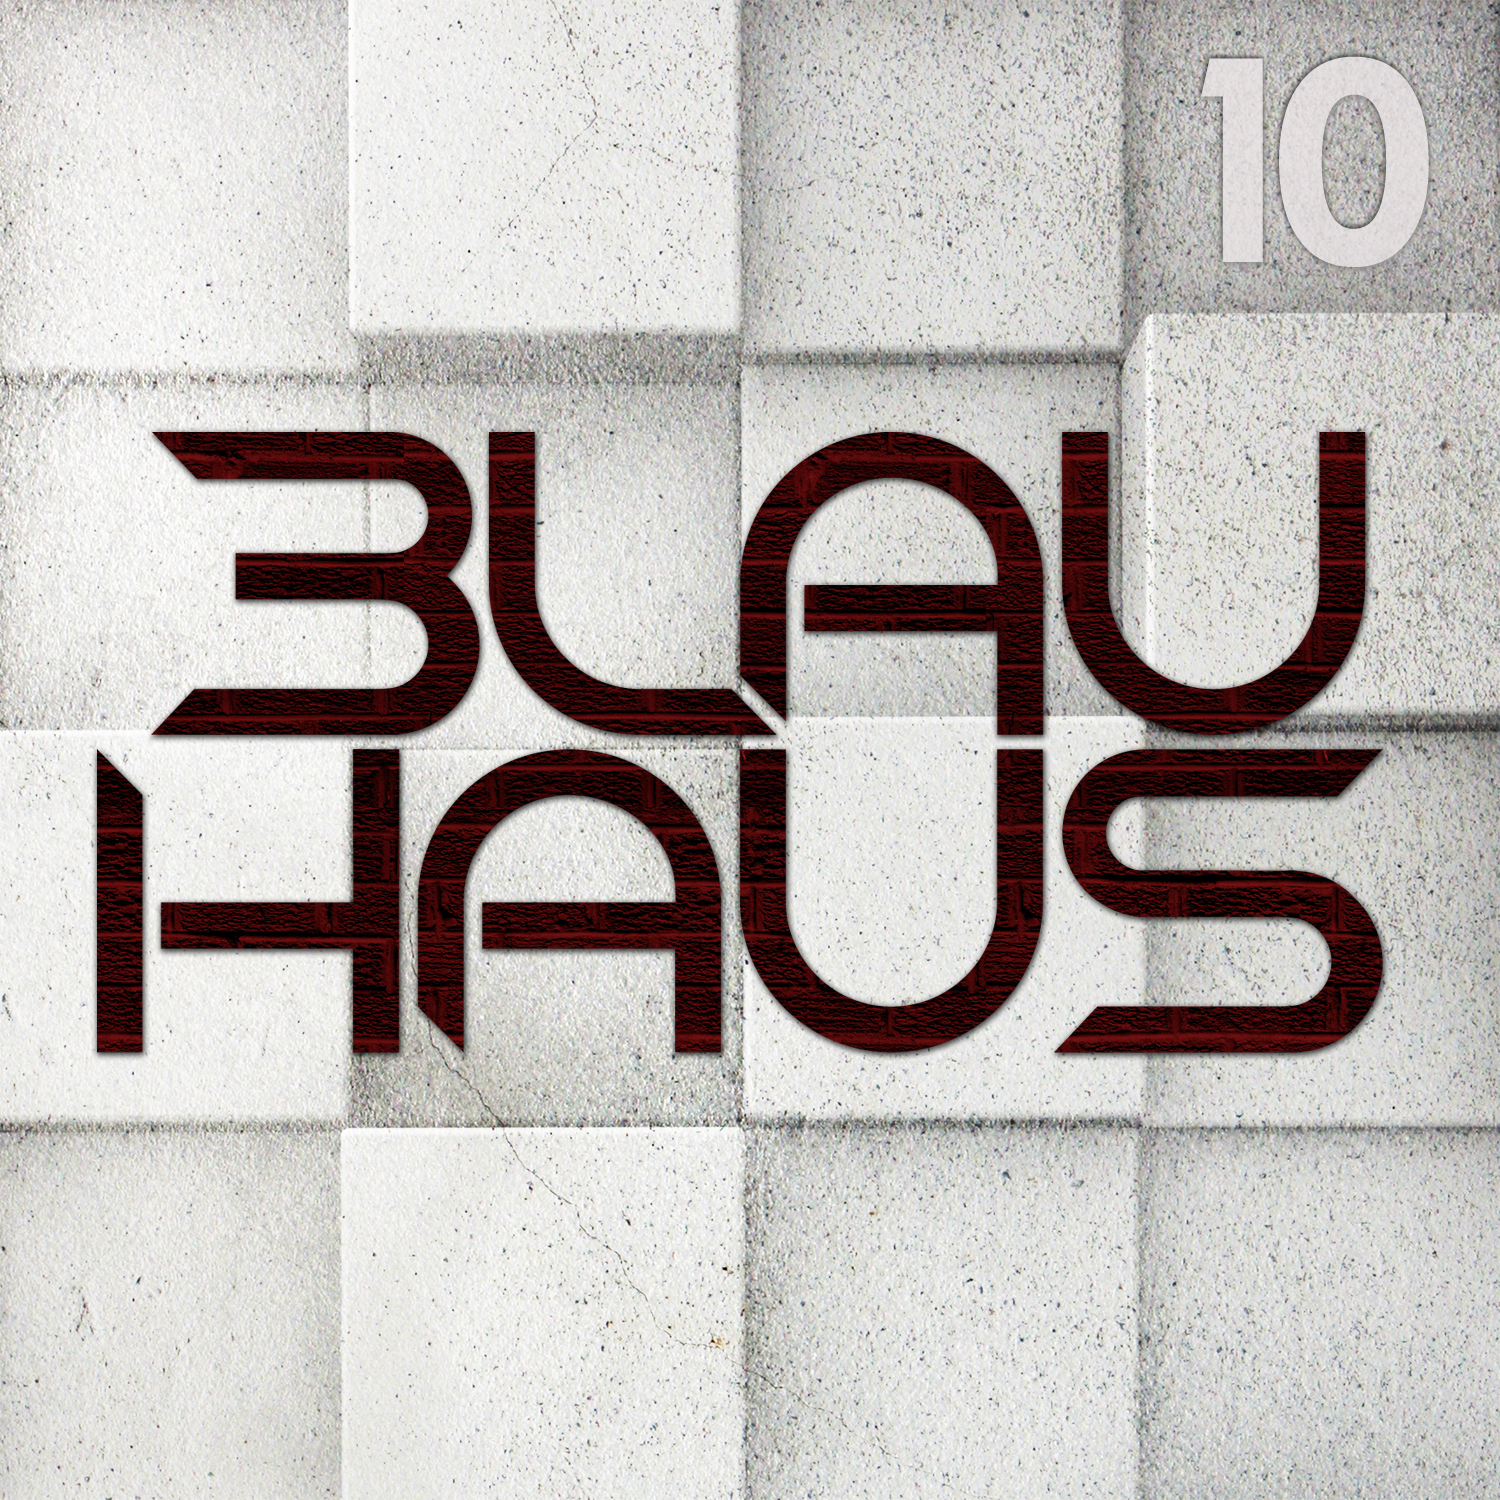 Blohm Haus 3lau Haus 18 Night Riot Free Download Pulse Of Motion